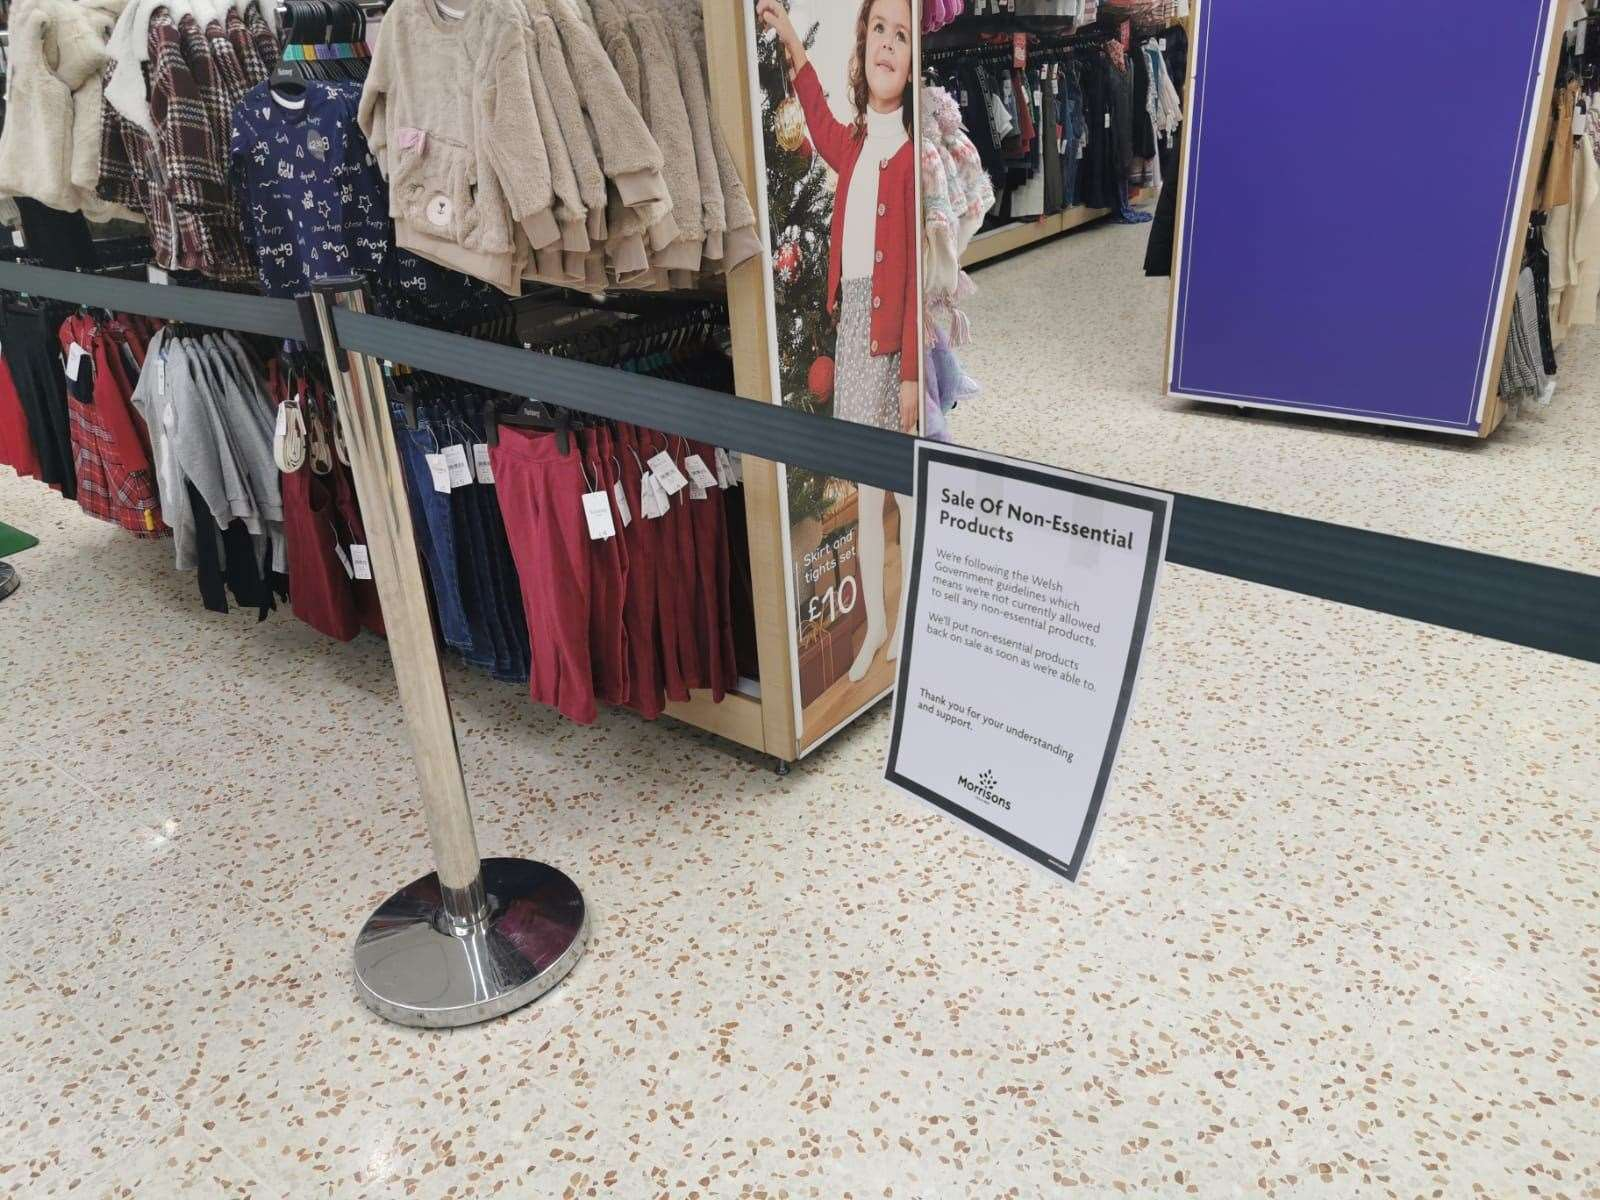 A notice informing customers of the sales of non-essential products in a Morrisons store in Cardiff Bay (Adam Hale/PA)